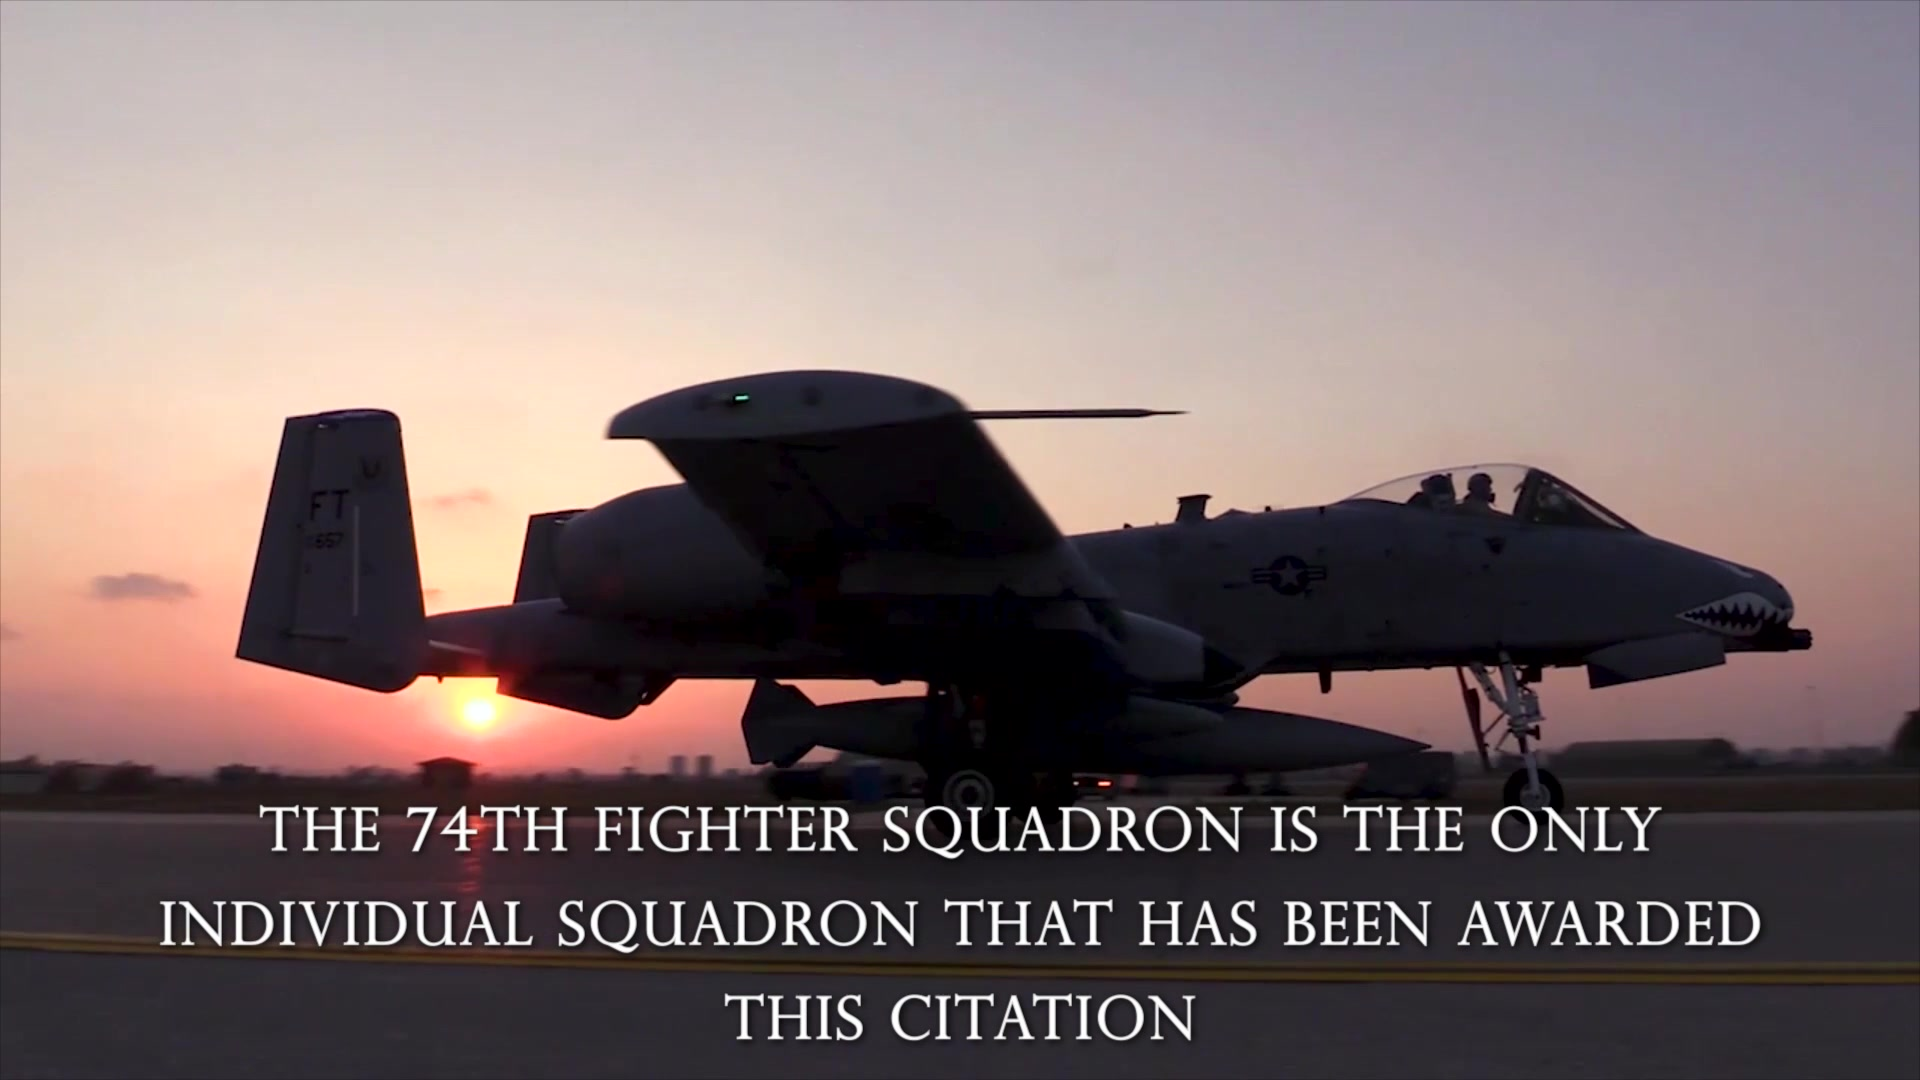 The Gallant Unit Citation has only been awarded five time in U.S. Air Force history. The 74th Fighter Squadron is the only individual squadron that has been awarded this citation.